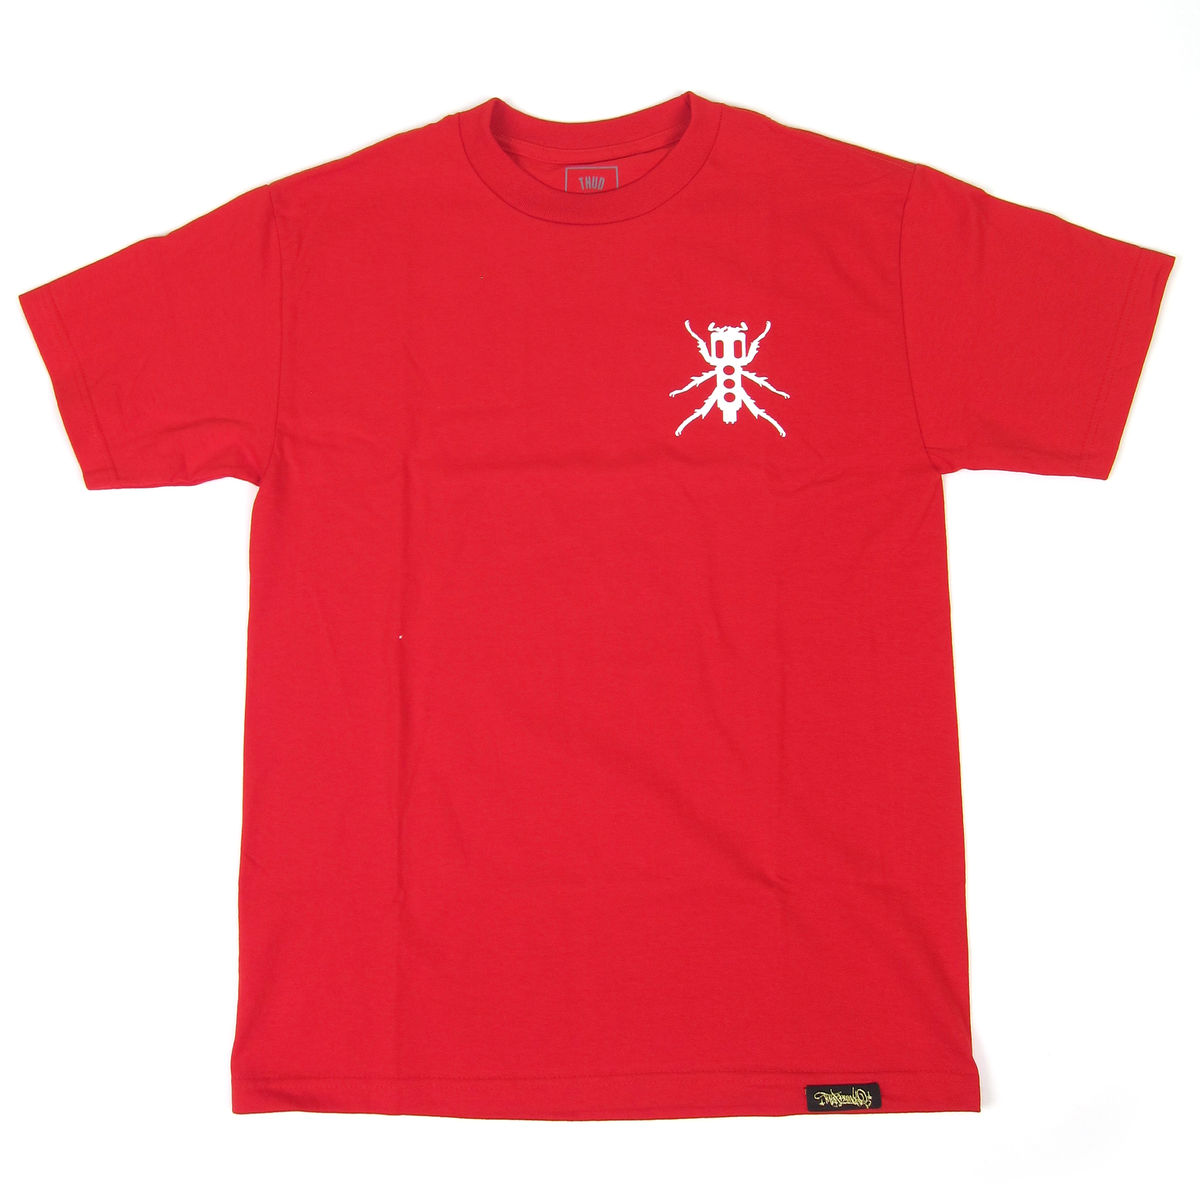 Thud Rumble: Classic Beedle Shirt - Red